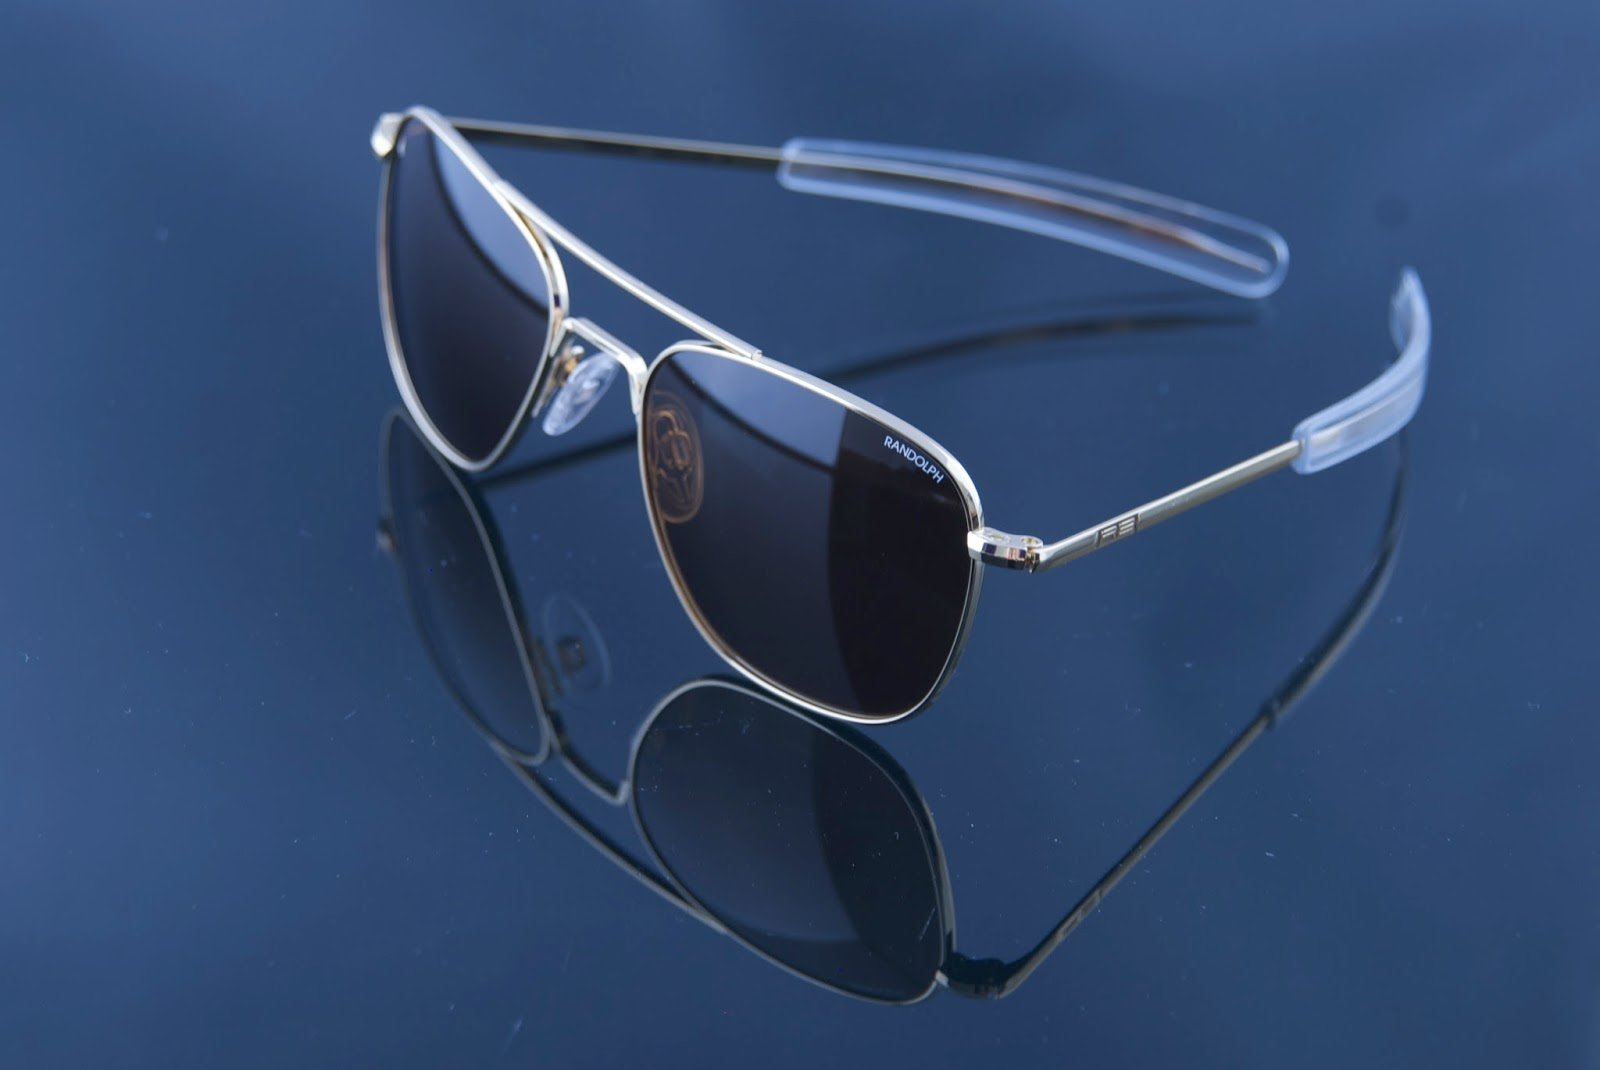 737c76ab376f Randolph Eyewear is by far the best aviators on the market. Randolph makes  sunglasses for the U.S. military